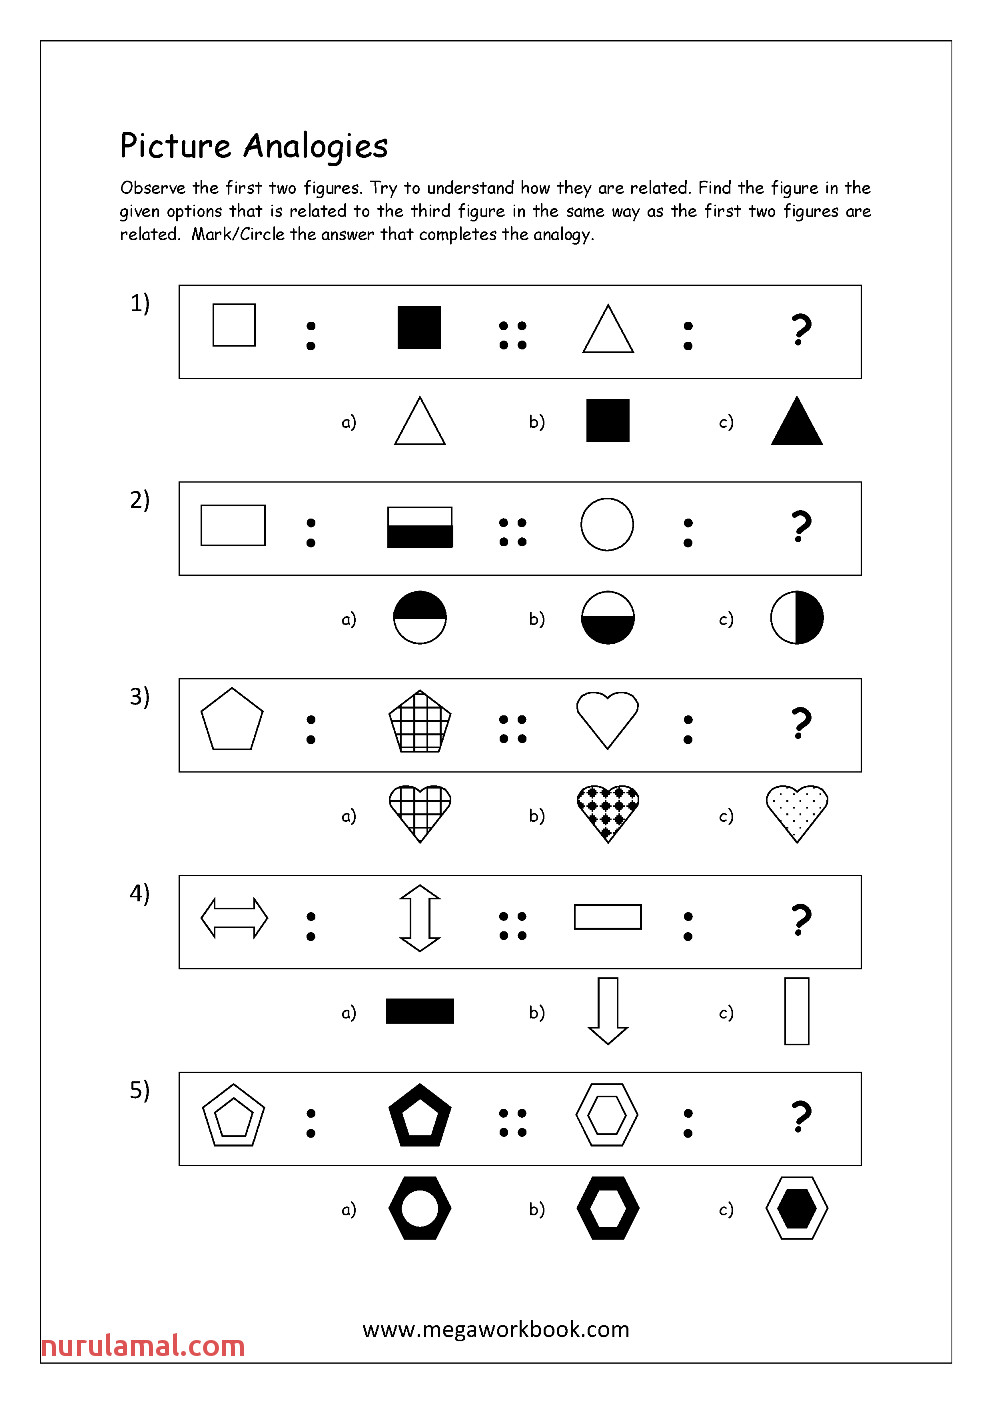 Free Printable Picture Analogy Worksheets Logical